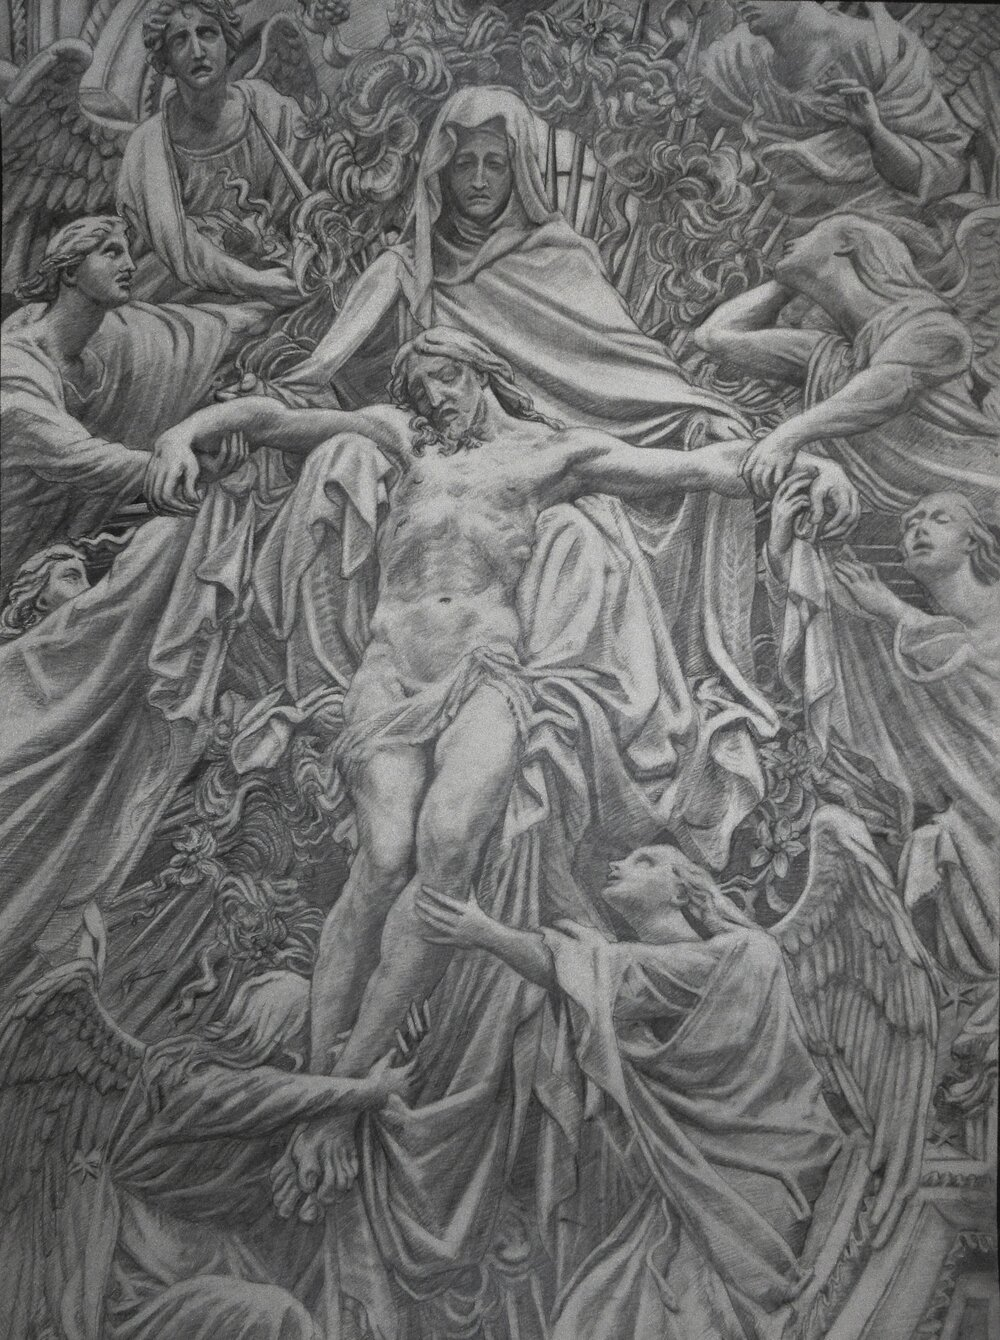 "Pieta Milano Duomo, pencil on paper, 22 x 30"". 2017"